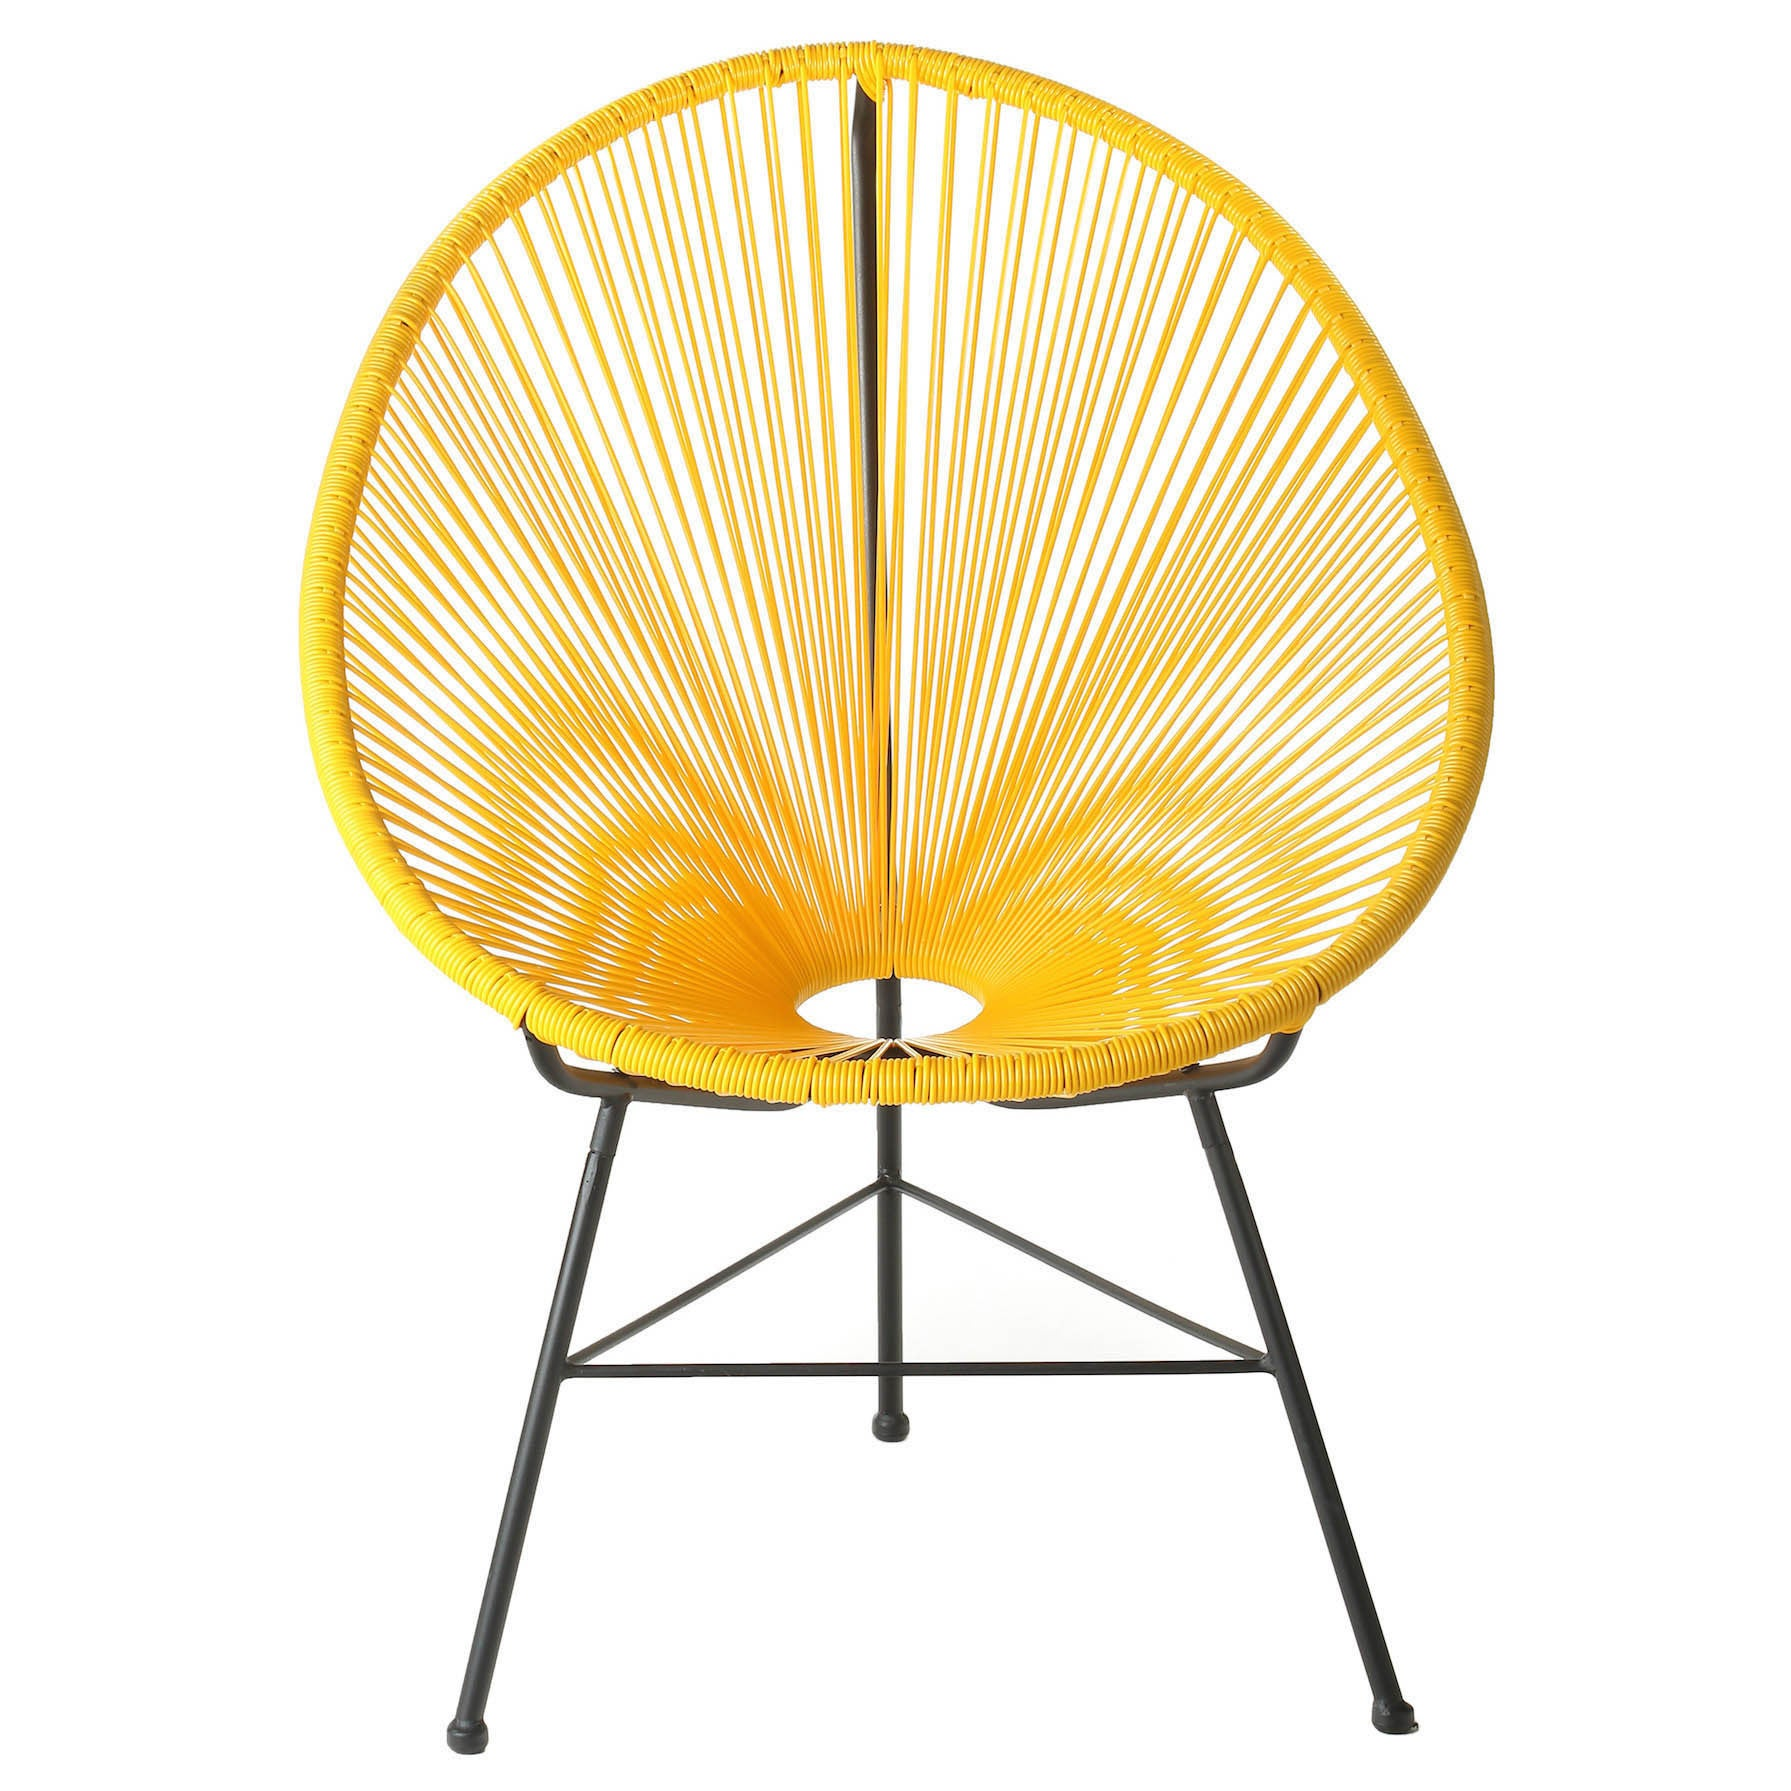 Delicieux Shop Acapulco Indoor/ Outdoor Woven Lounge Chair   Free Shipping Today    Overstock.com   10281685